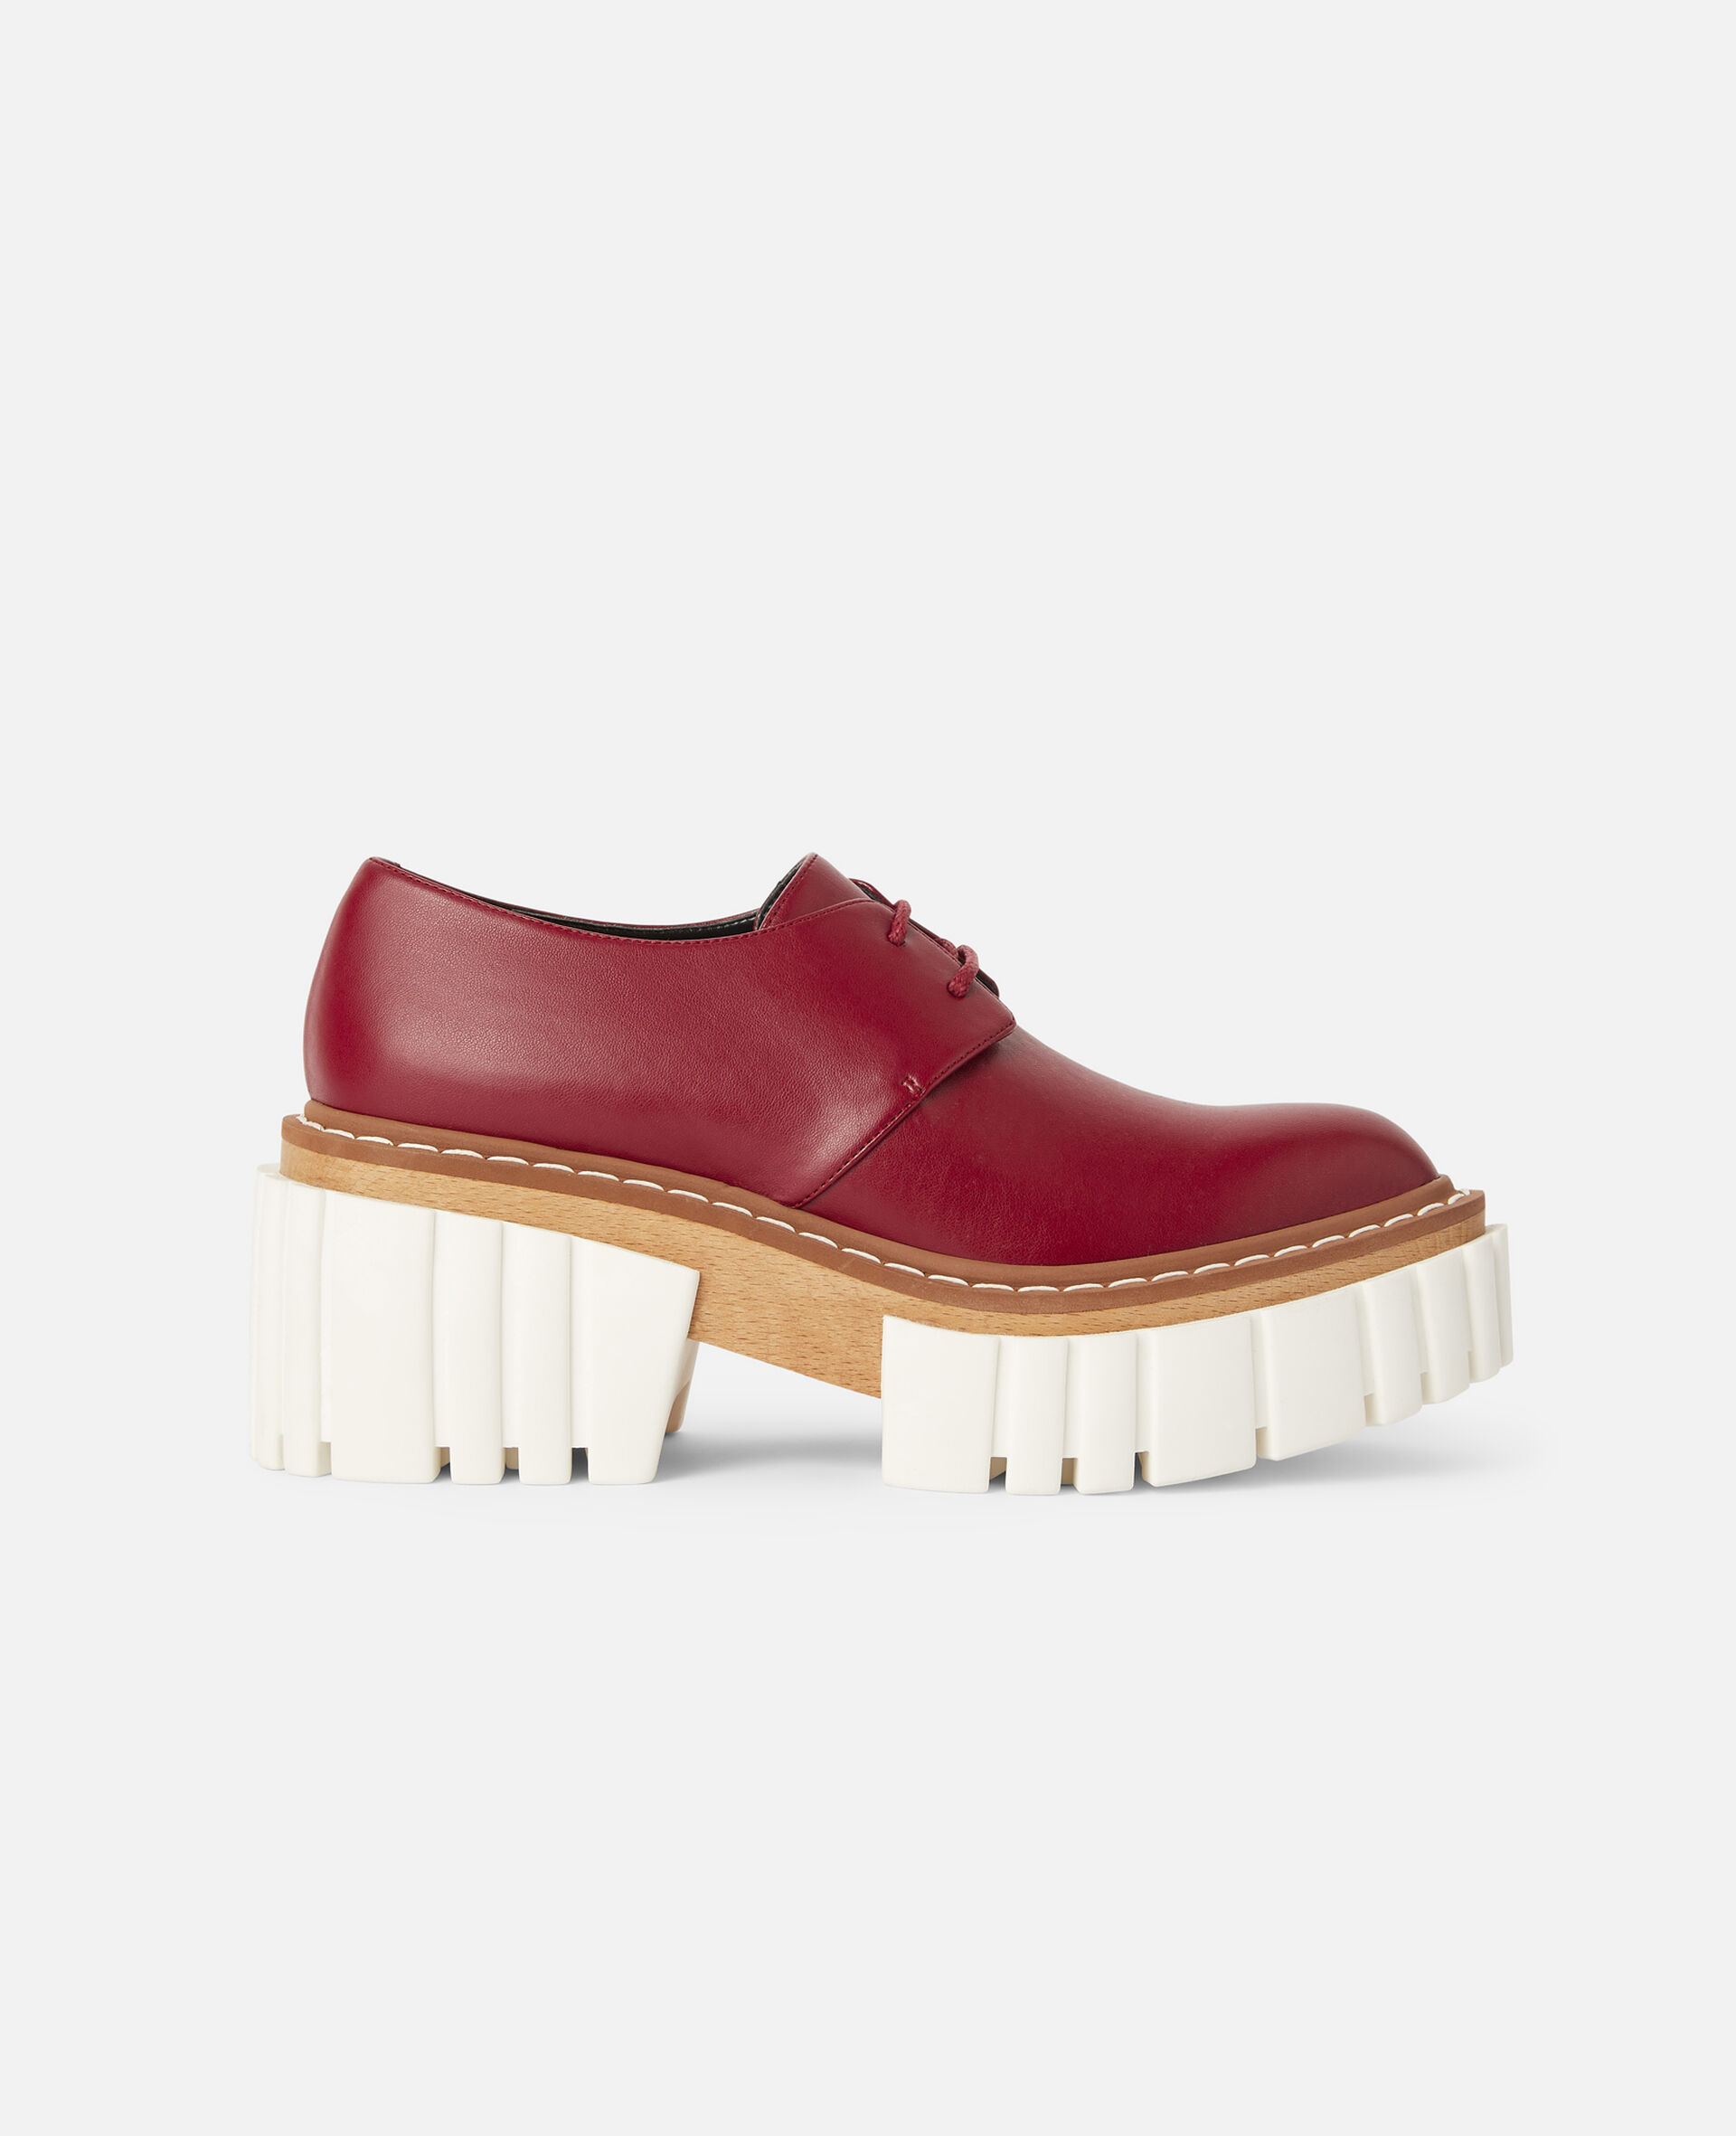 Emilie Lace-Up Shoes-Red-large image number 0